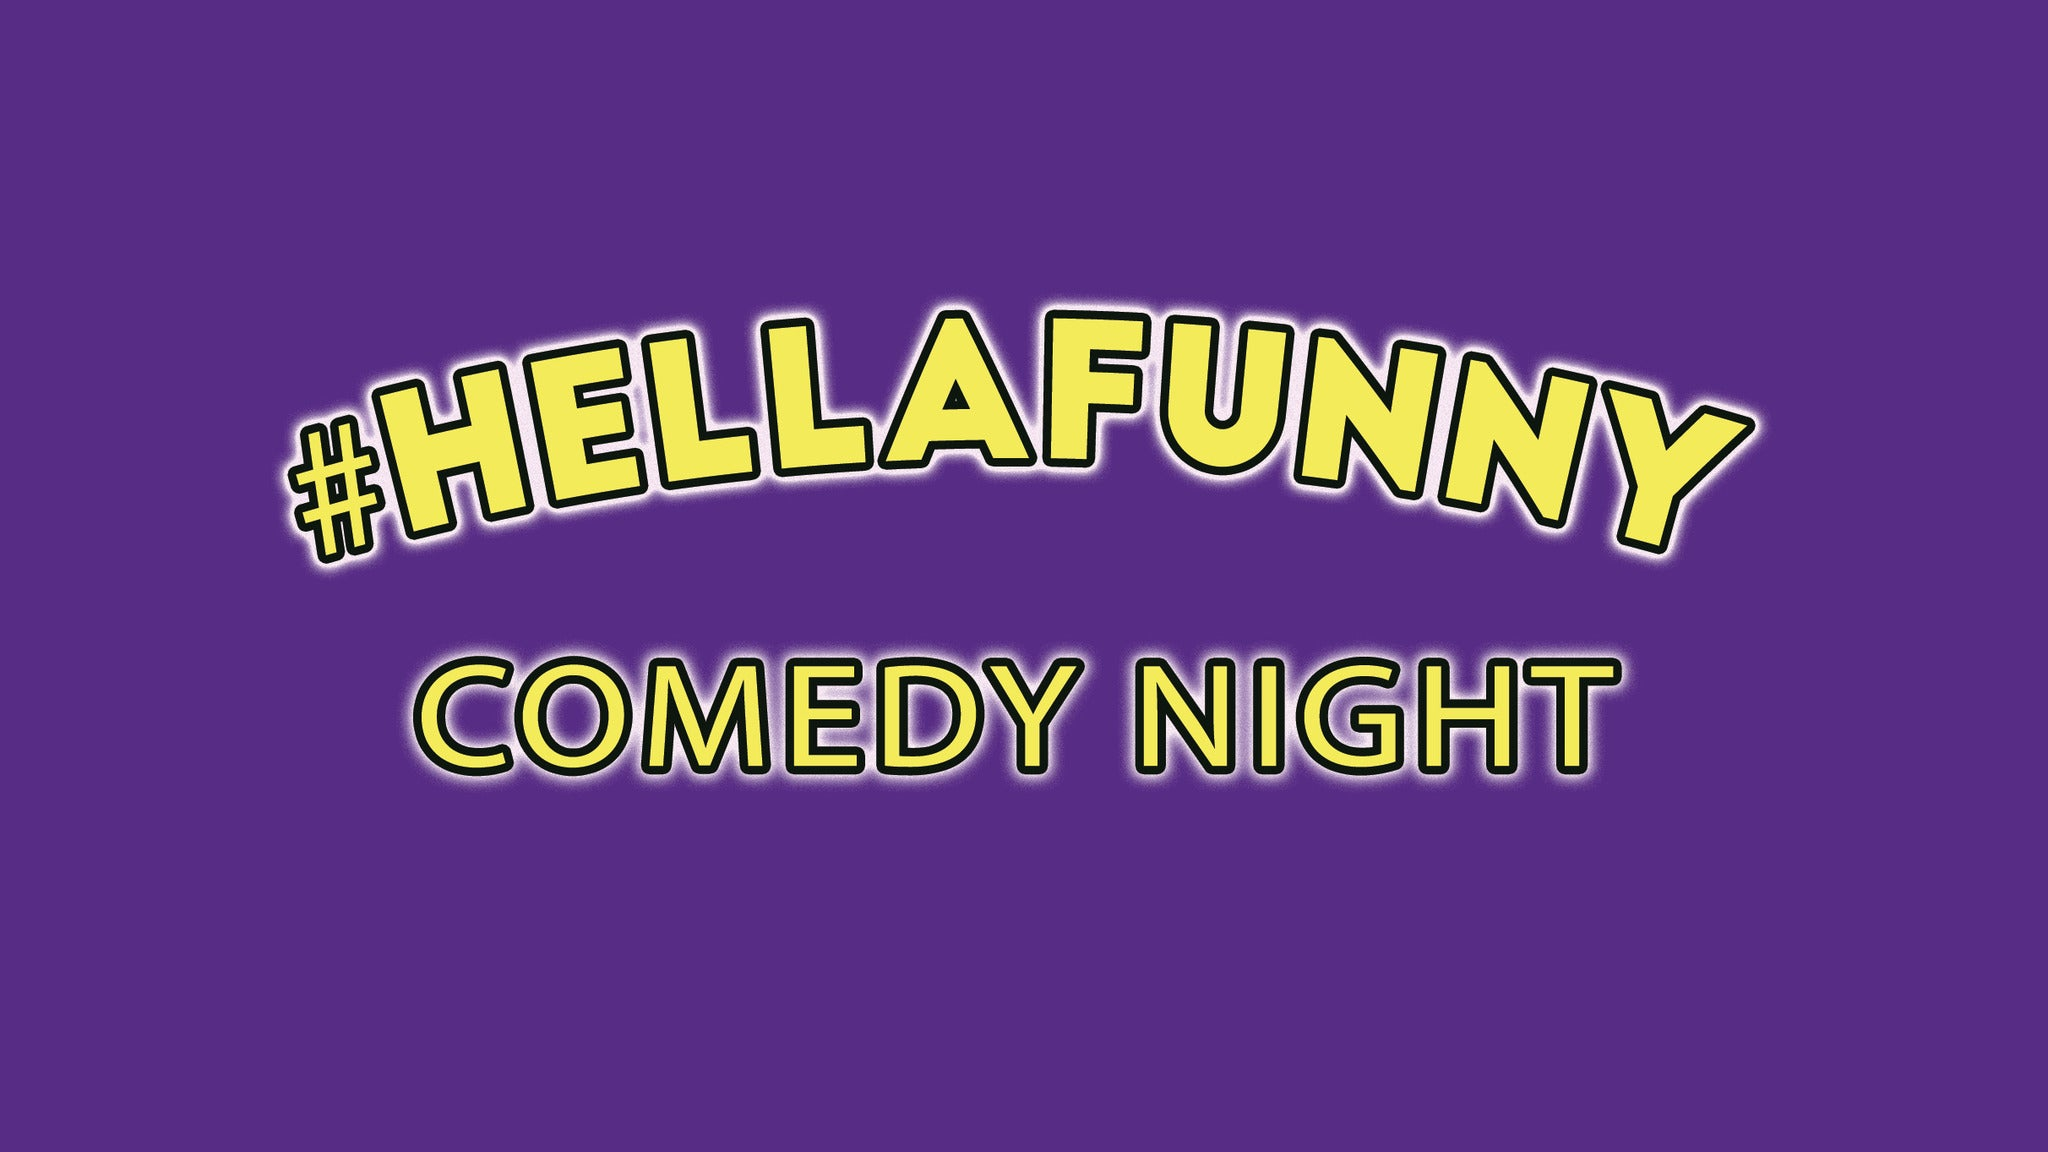 #HellaFunny Comedy Night at Cobb's Comedy Club